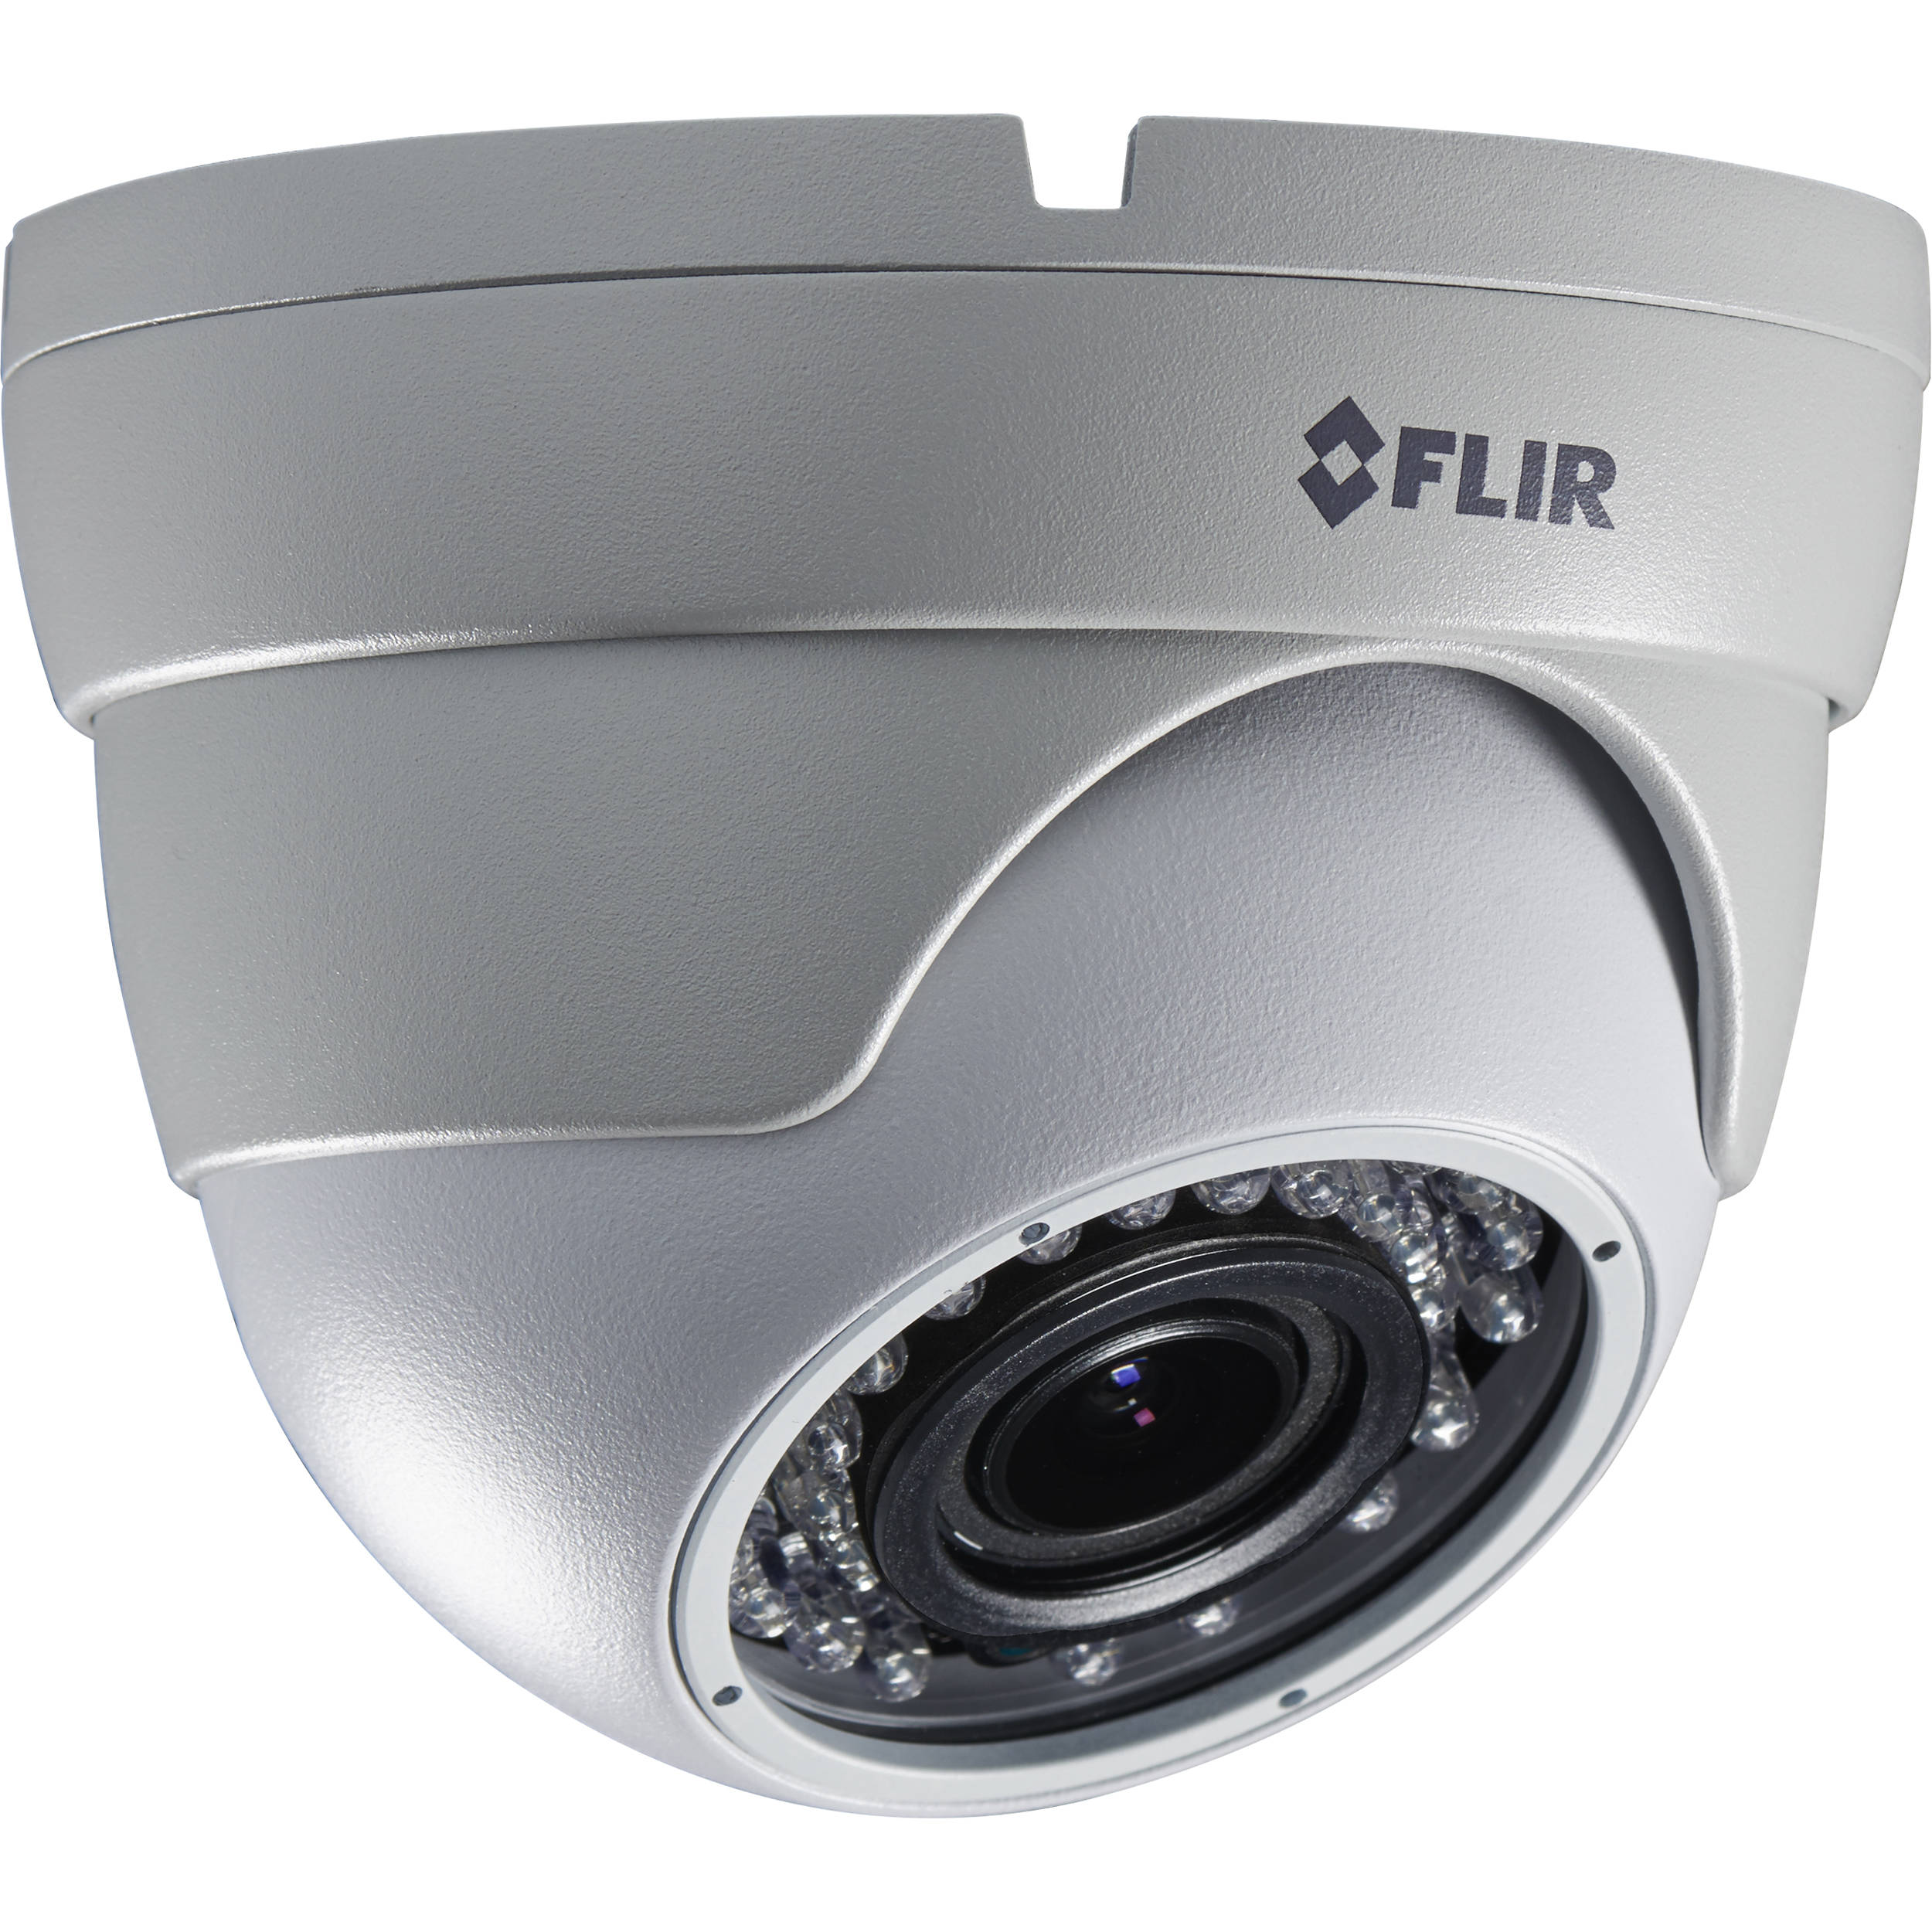 flir mpx series 1 3mp outdoor hd cvi dome camera c234ec b h. Black Bedroom Furniture Sets. Home Design Ideas